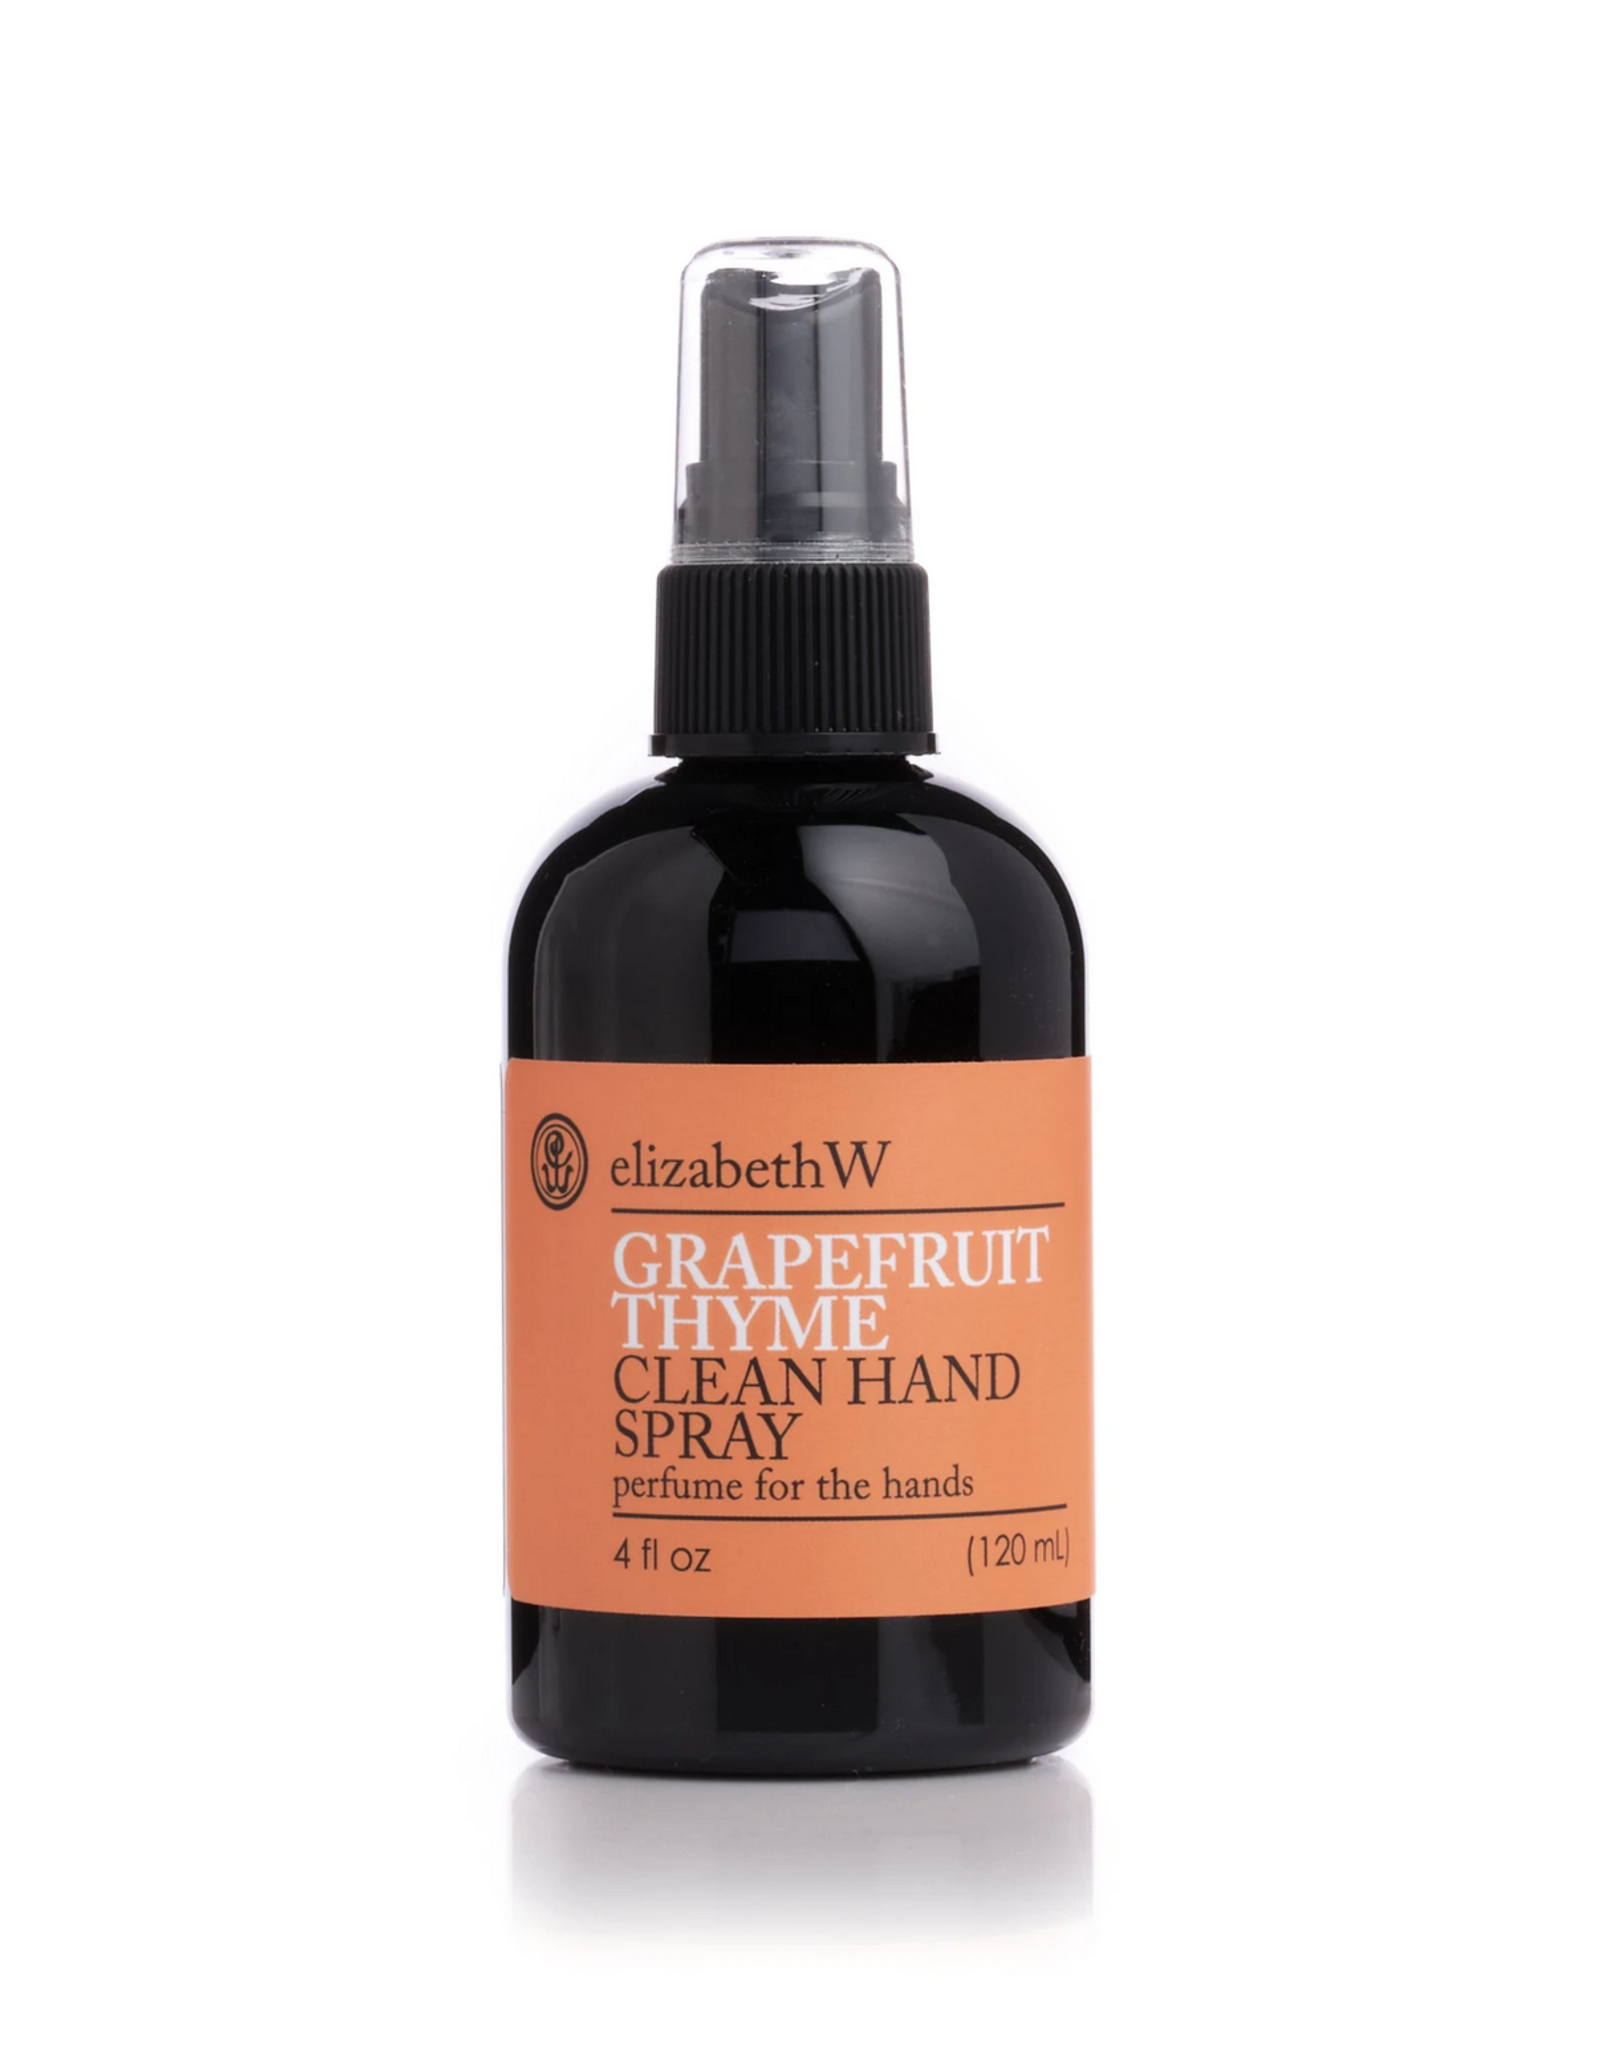 ELIZABETH W Grapefruit Thyme Hand Spray- 4 oz